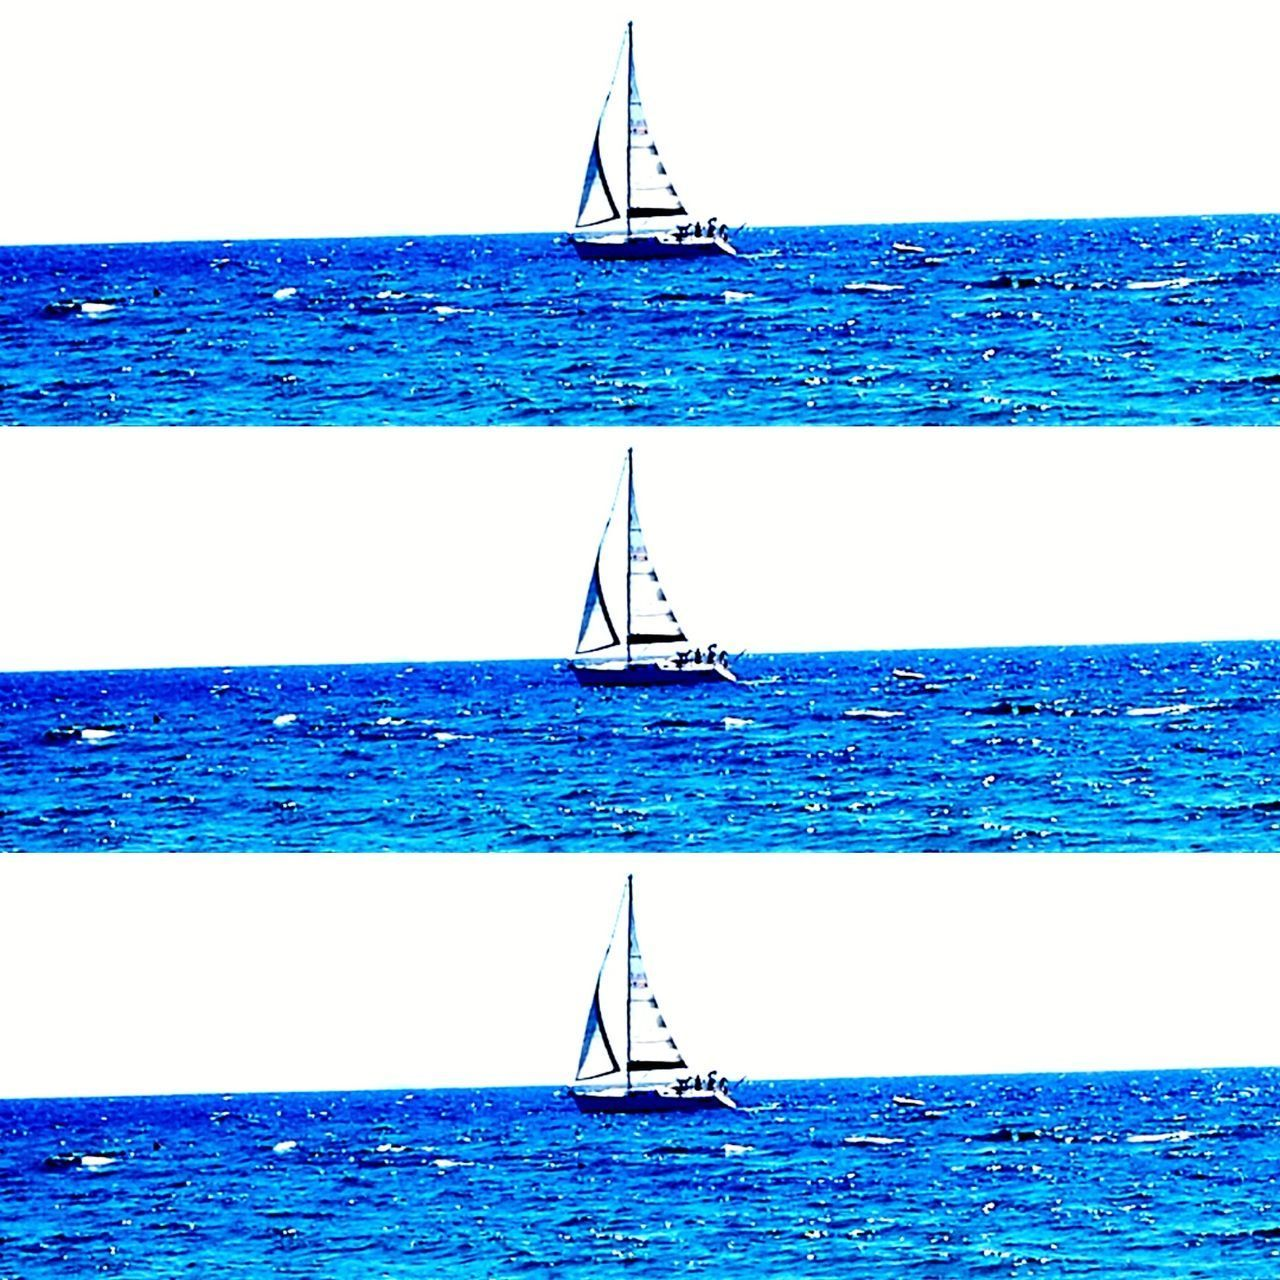 sea, nautical vessel, water, horizon over water, sailboat, sailing, boat, ship, mast, day, sailing ship, outdoors, transportation, scenics, waterfront, nature, beach, no people, rippled, yacht, tranquility, tranquil scene, beauty in nature, blue, vacations, sky, tall ship, yachting